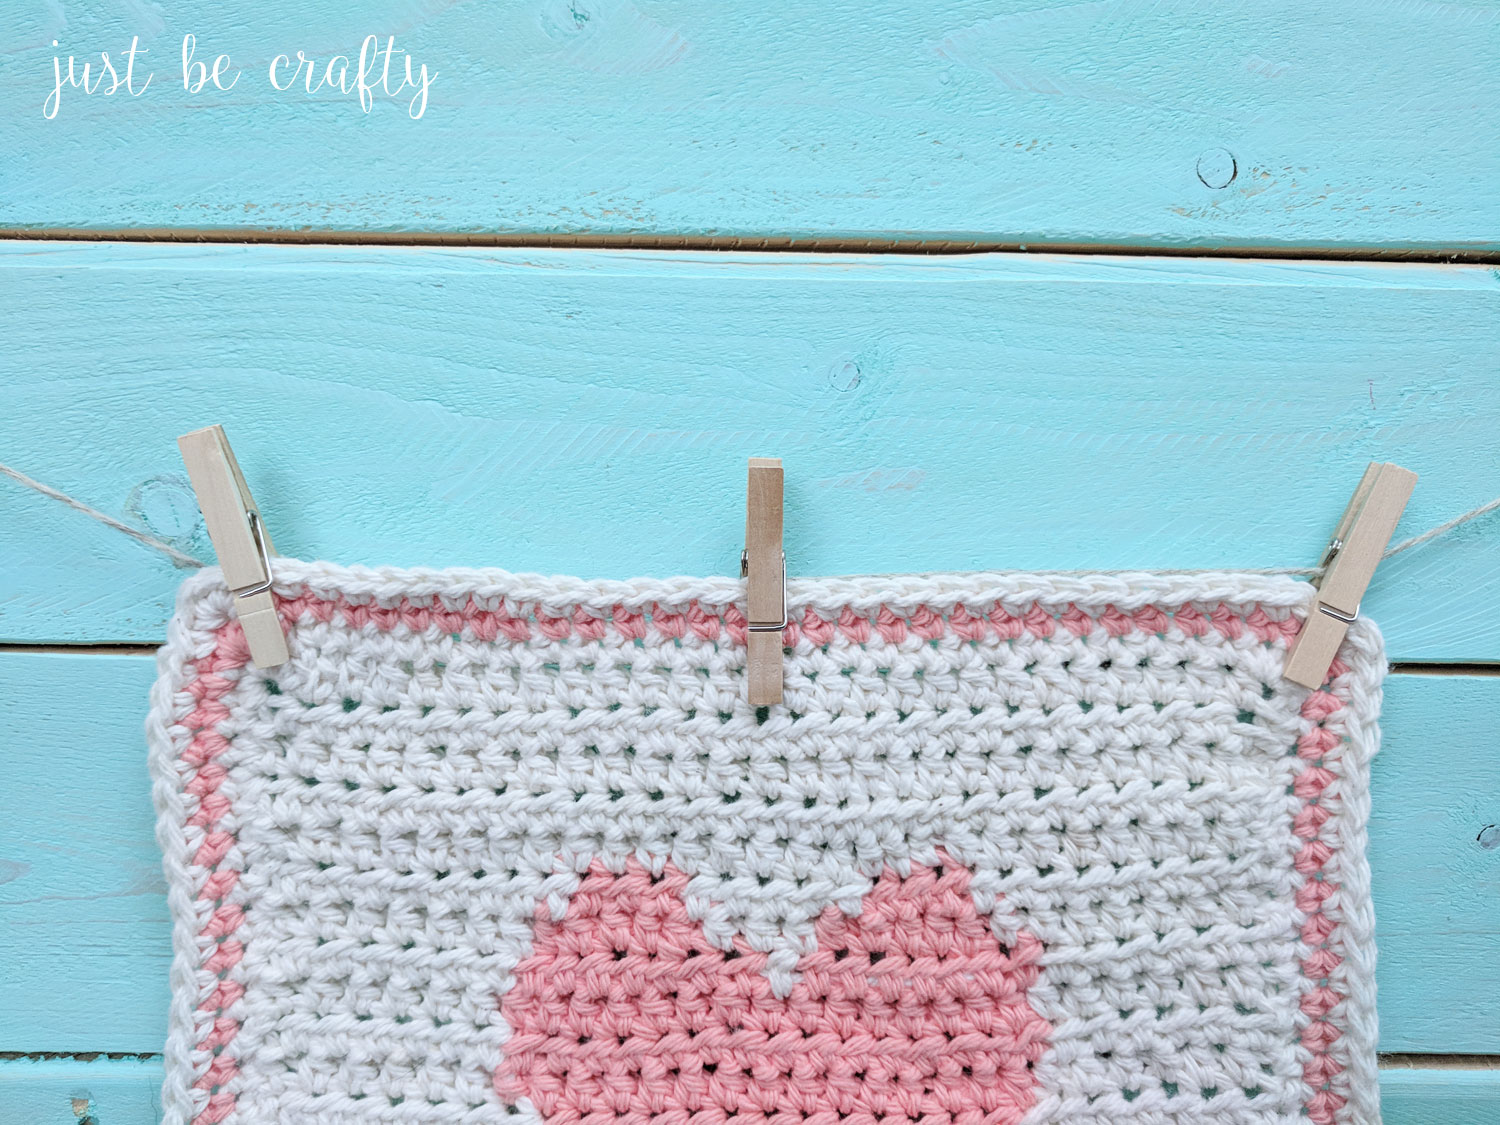 Lovebird Crochet Washcloth Pattern